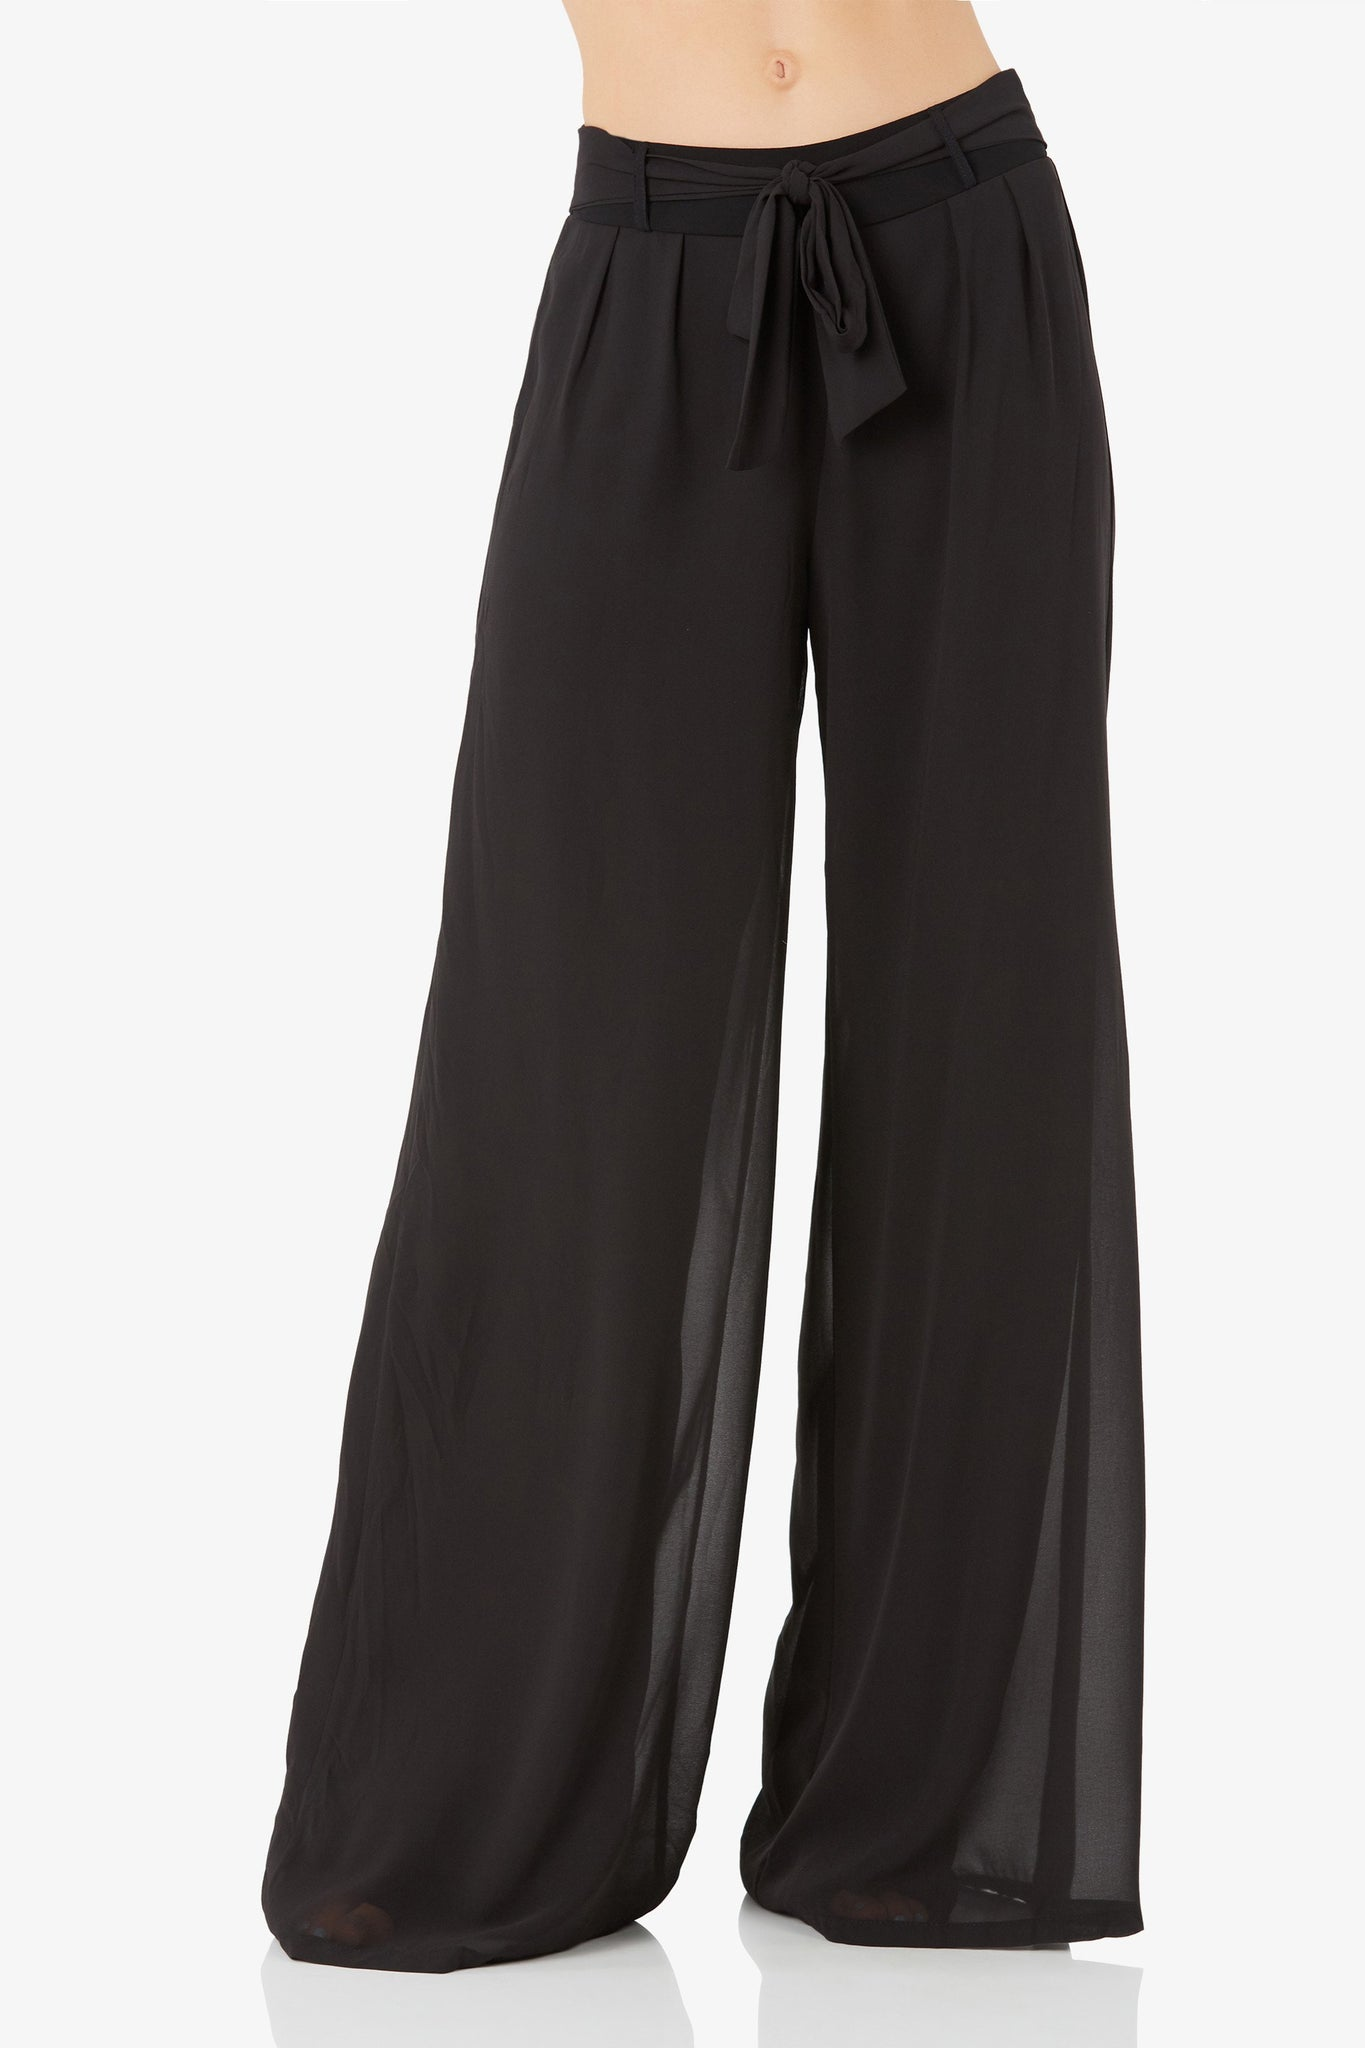 Chic high rise chiffon pants with elasticized waist and tie detailing. Wide leg fit with straight hem finish.